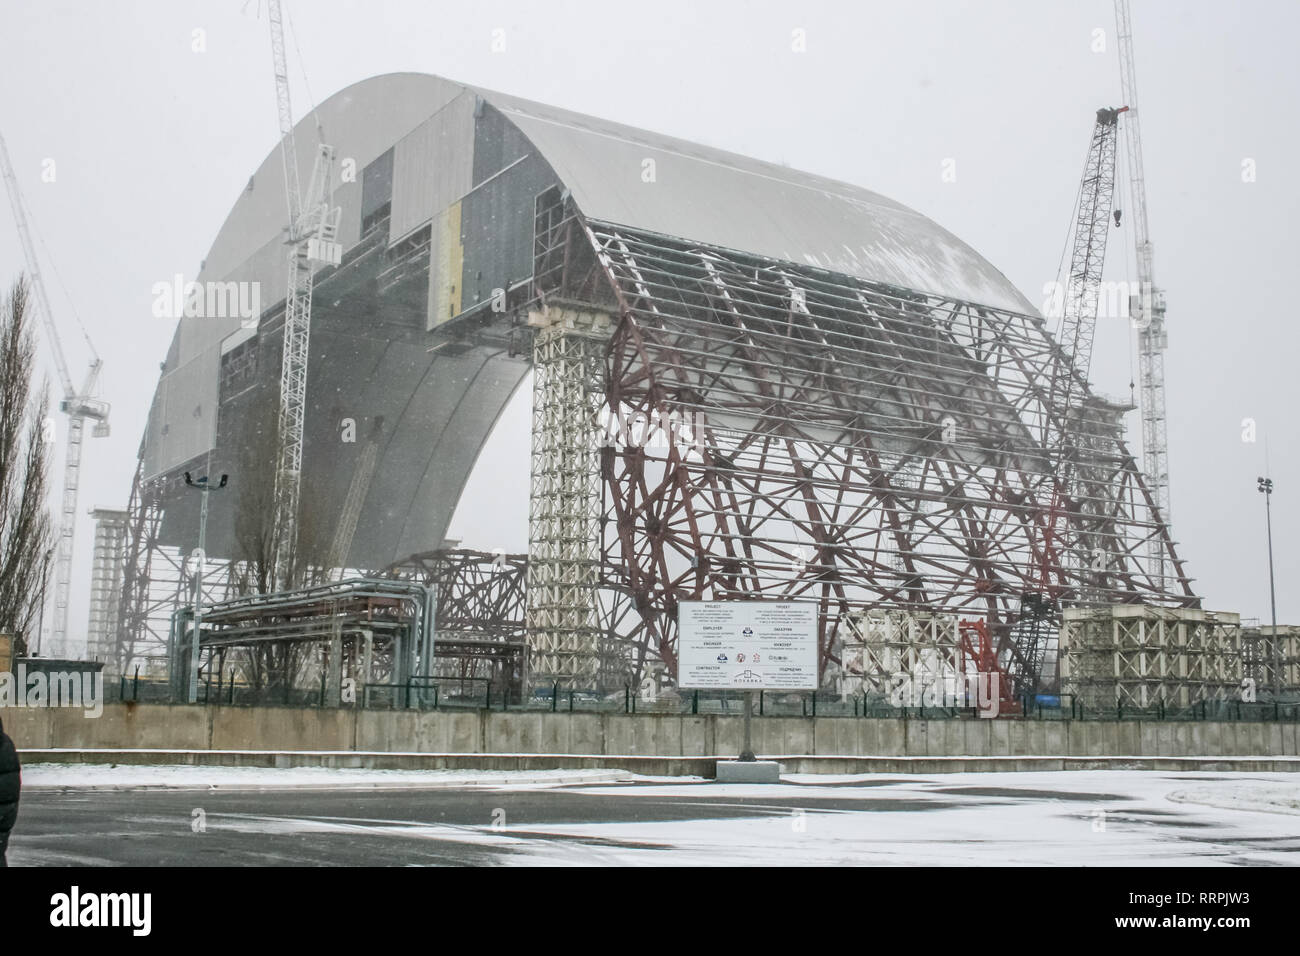 Chernobyl nuclear power plant and sarcophagus  Pripyat, the